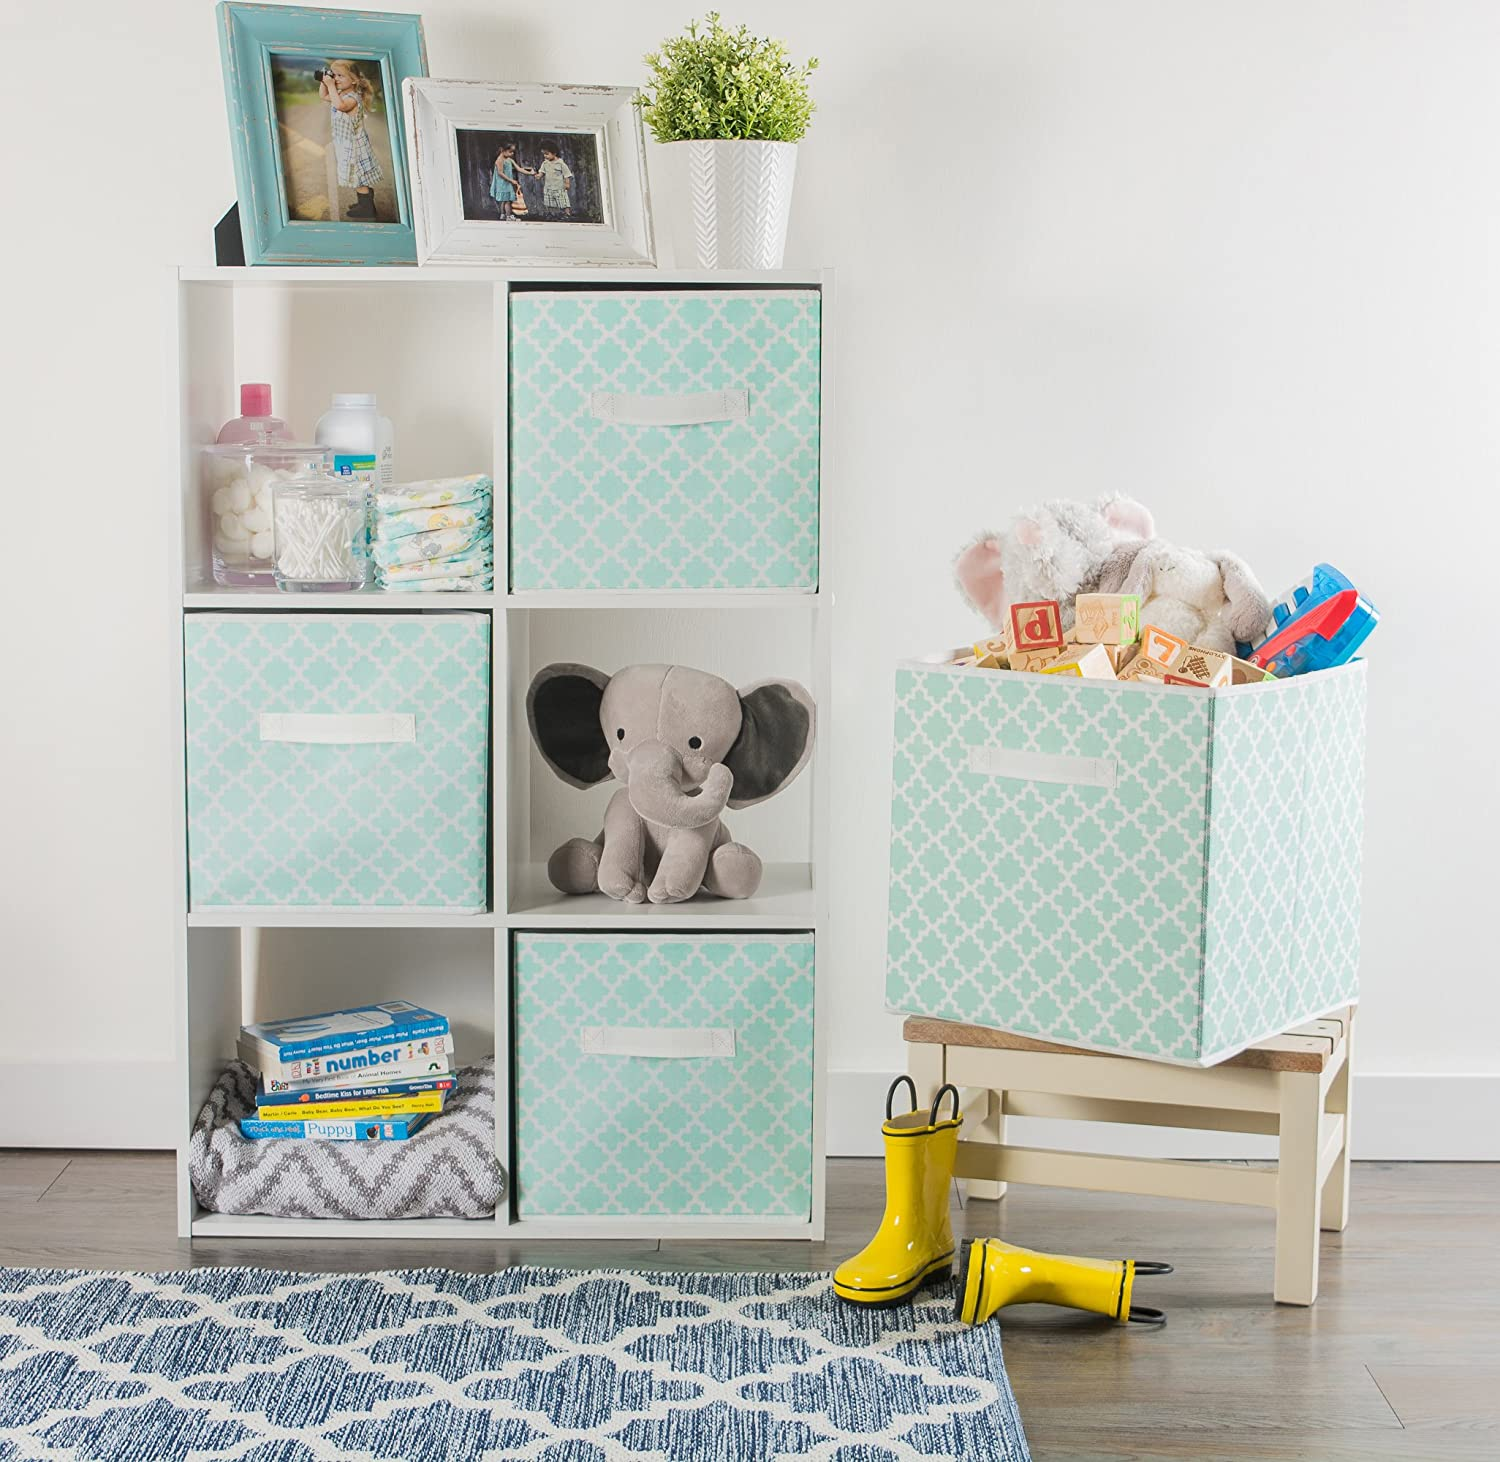 Cube Organizers /& Everyday Storage Needs, DII Foldable Fabric Storage Containers for Nurseries Home Decor Large - 11 x 11 x 11 Aqua Lattice Offices Closets Set of 2